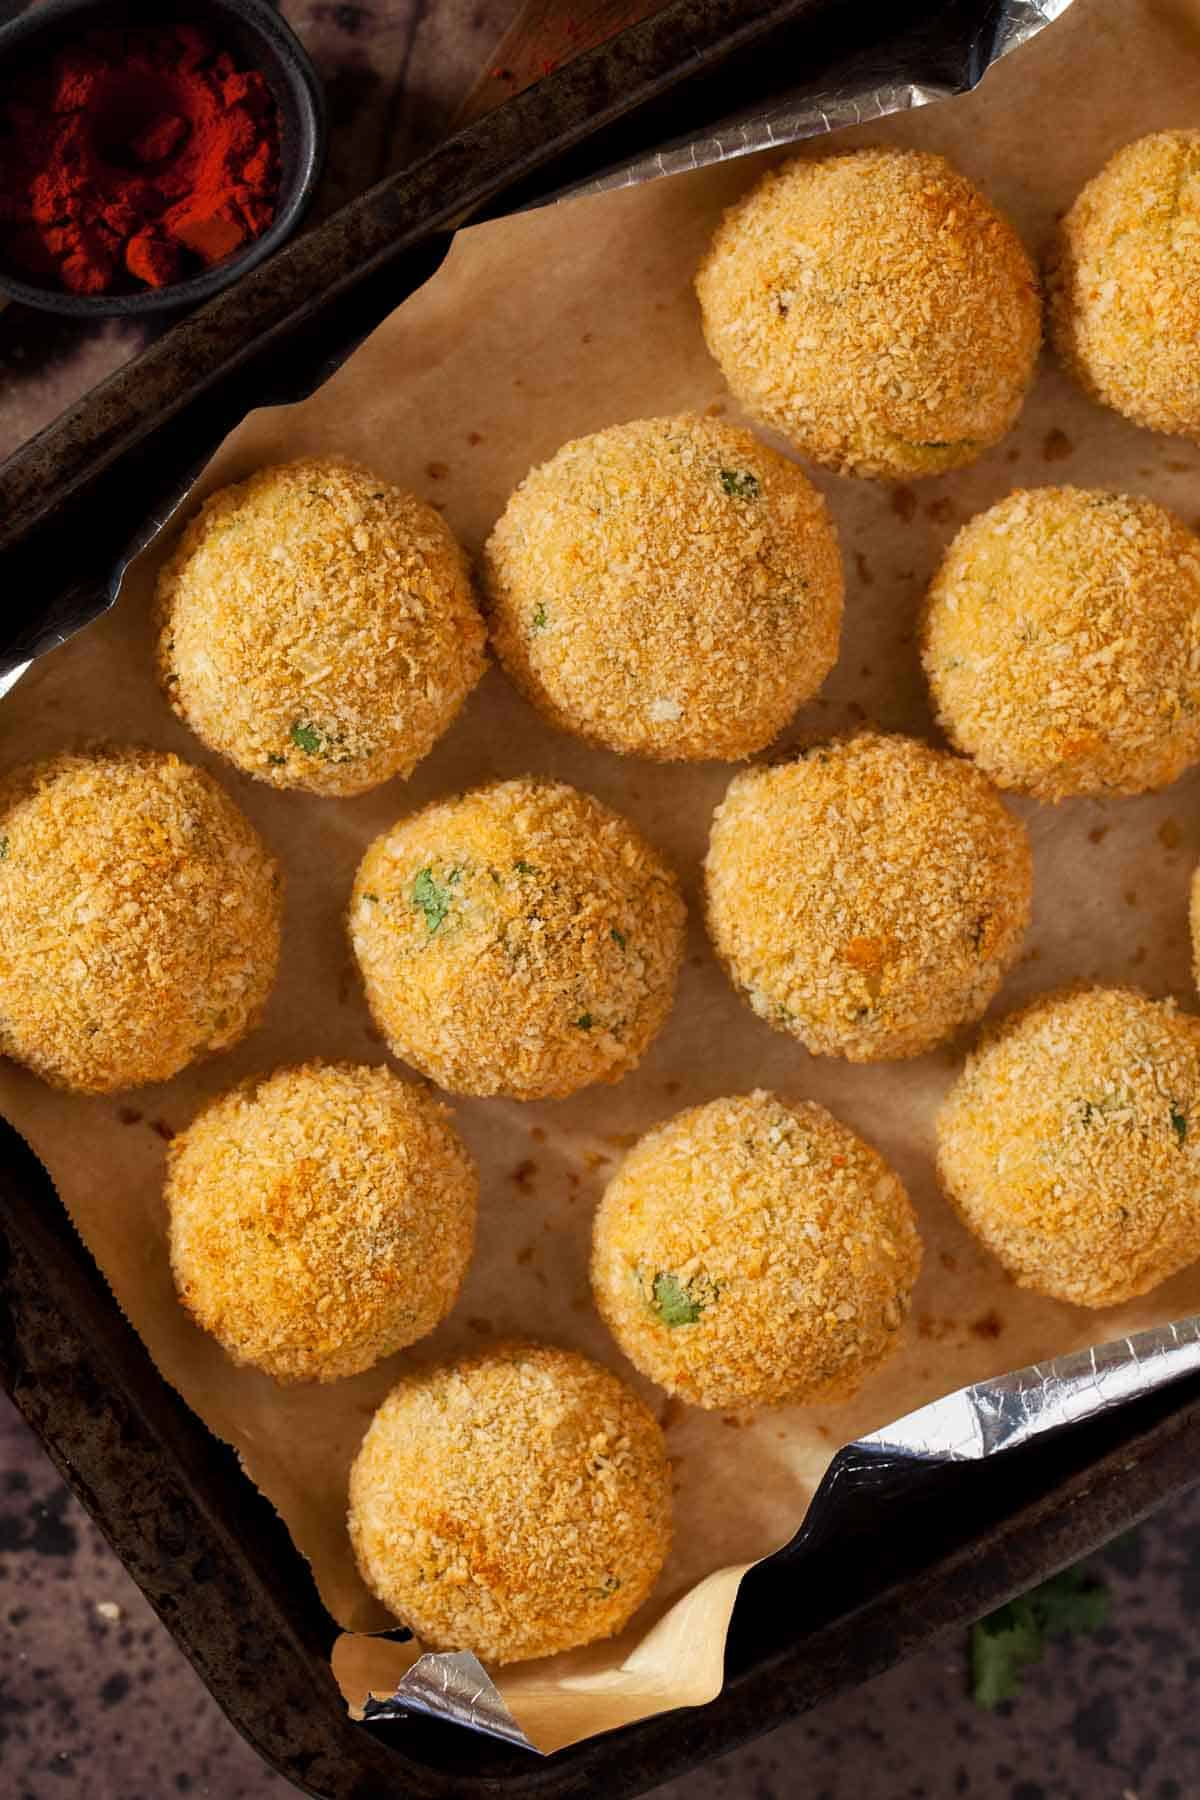 Freshly baked Indian Spiced Smoked Haddock Fish Cakes on a baking tin